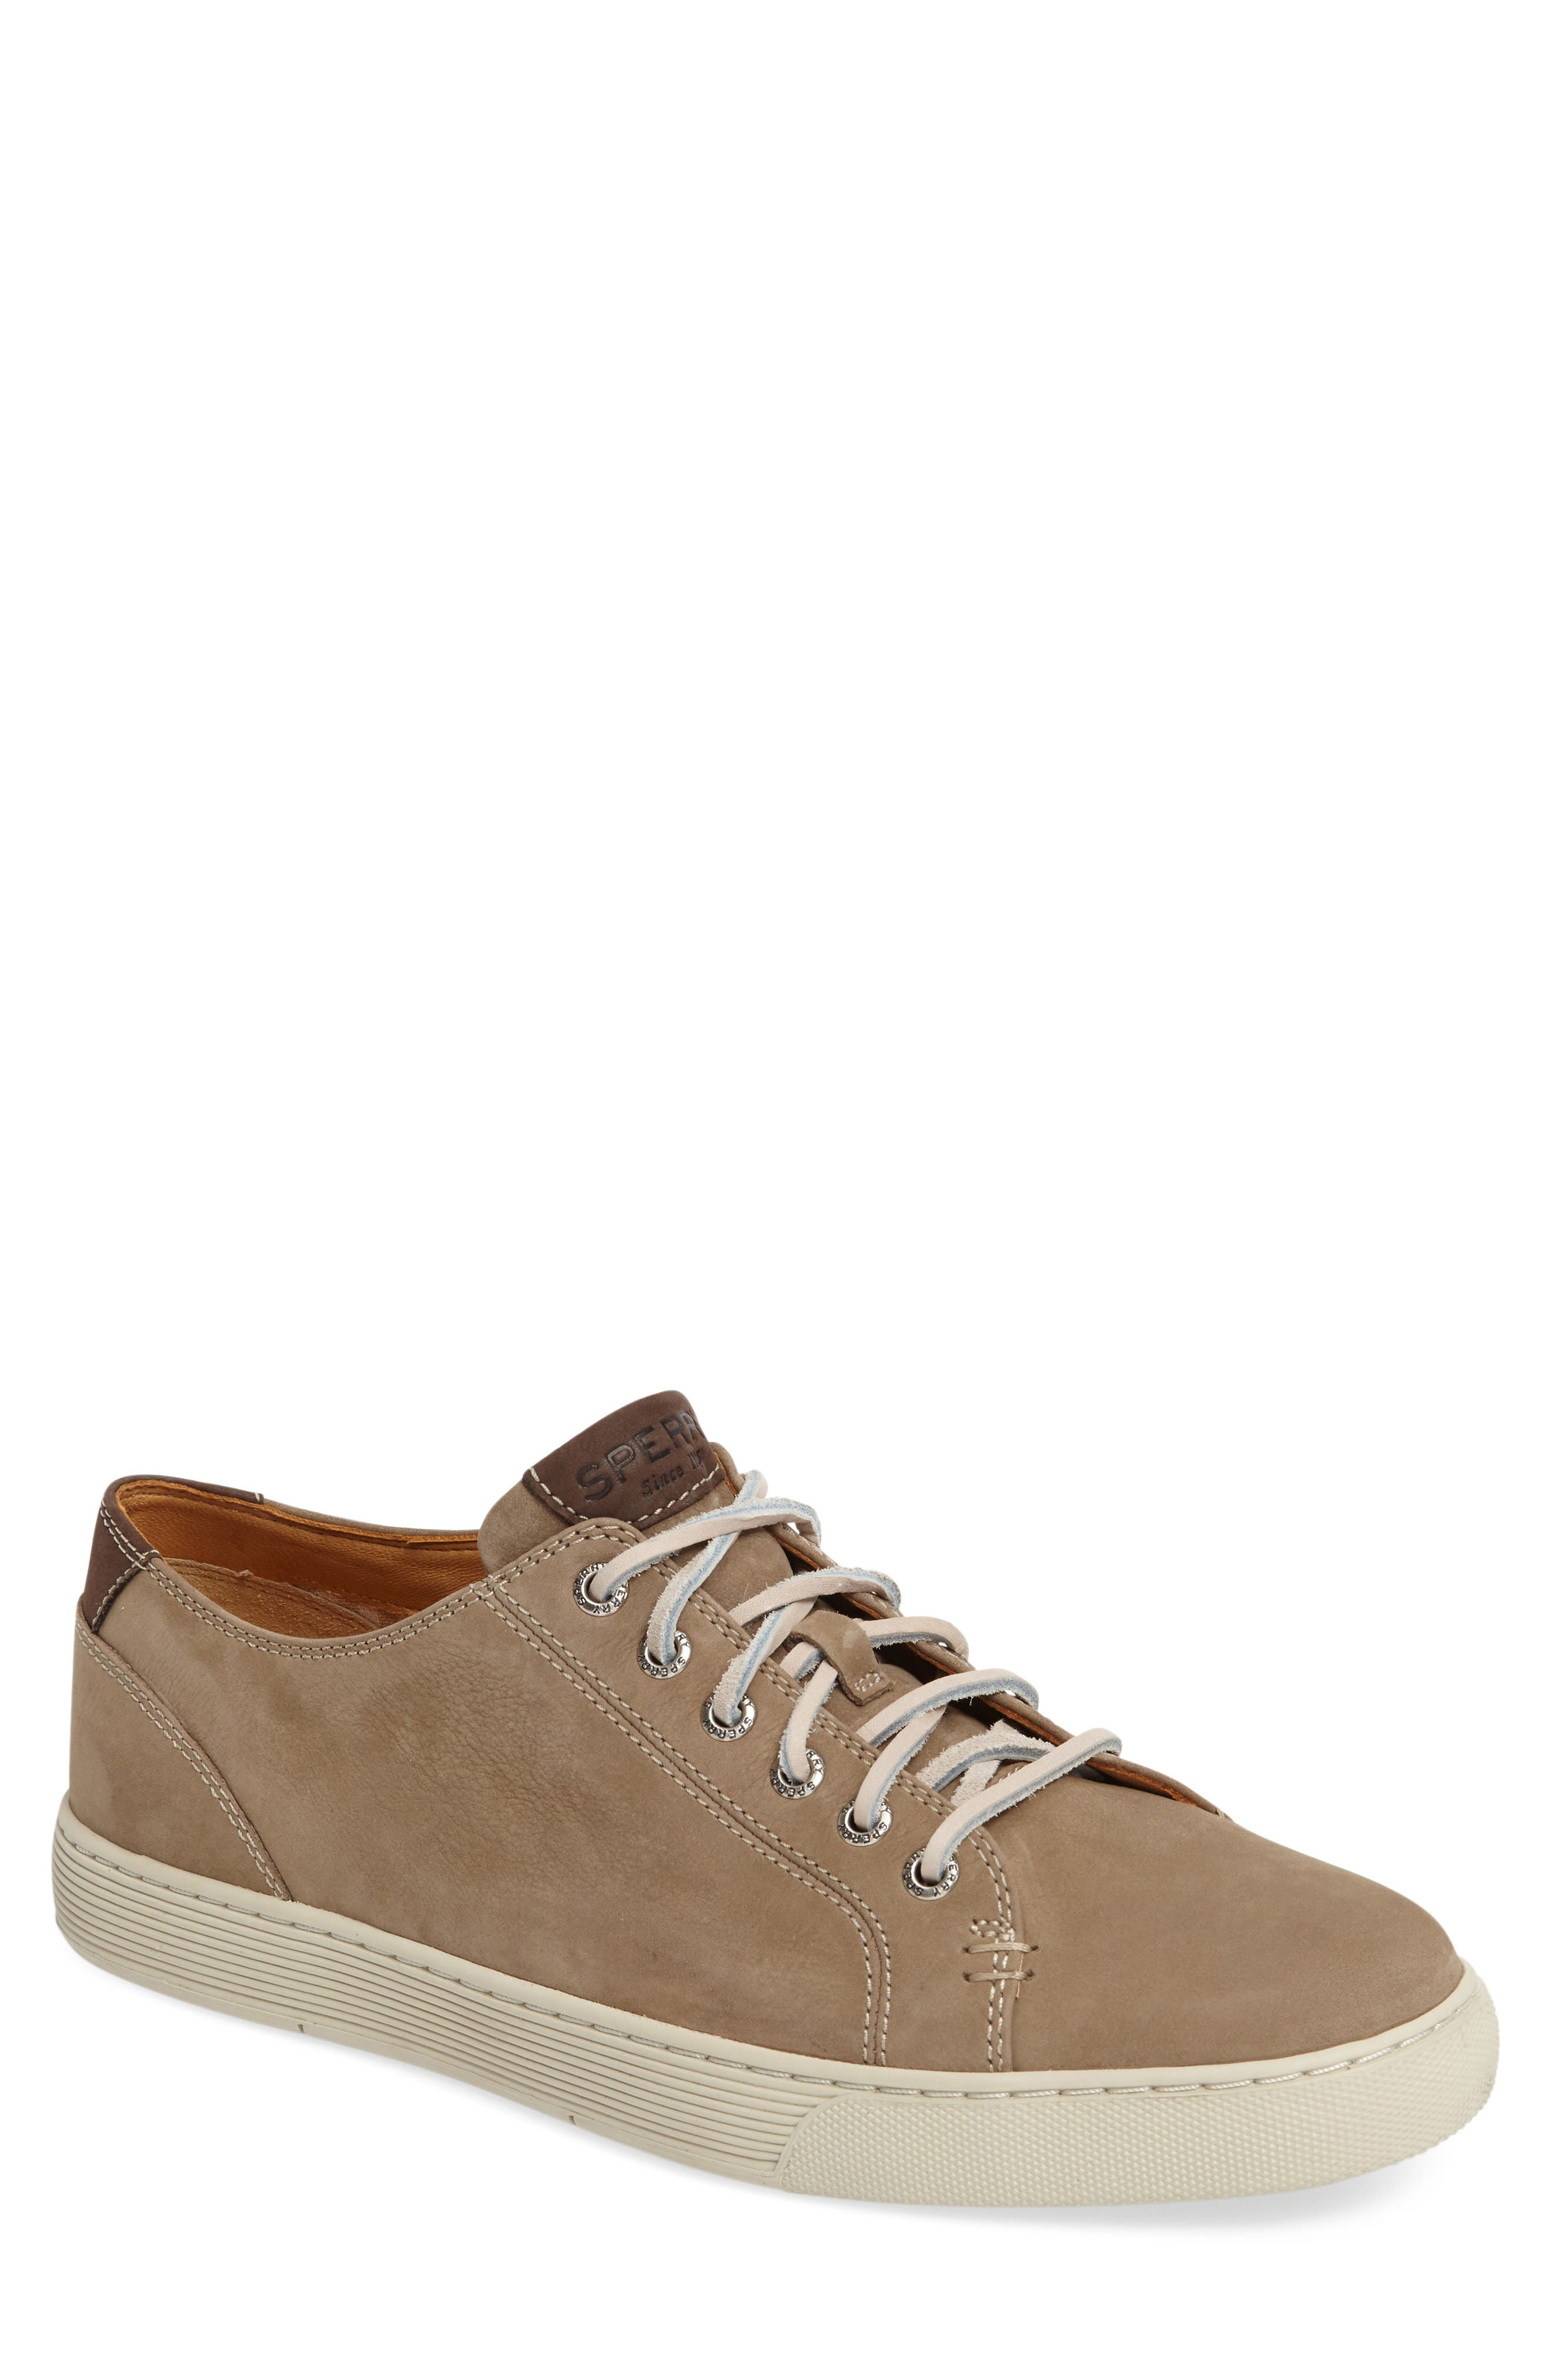 'Gold Cup - LTT' Sneaker (Men)',                         Main,                         color, Taupe Suede